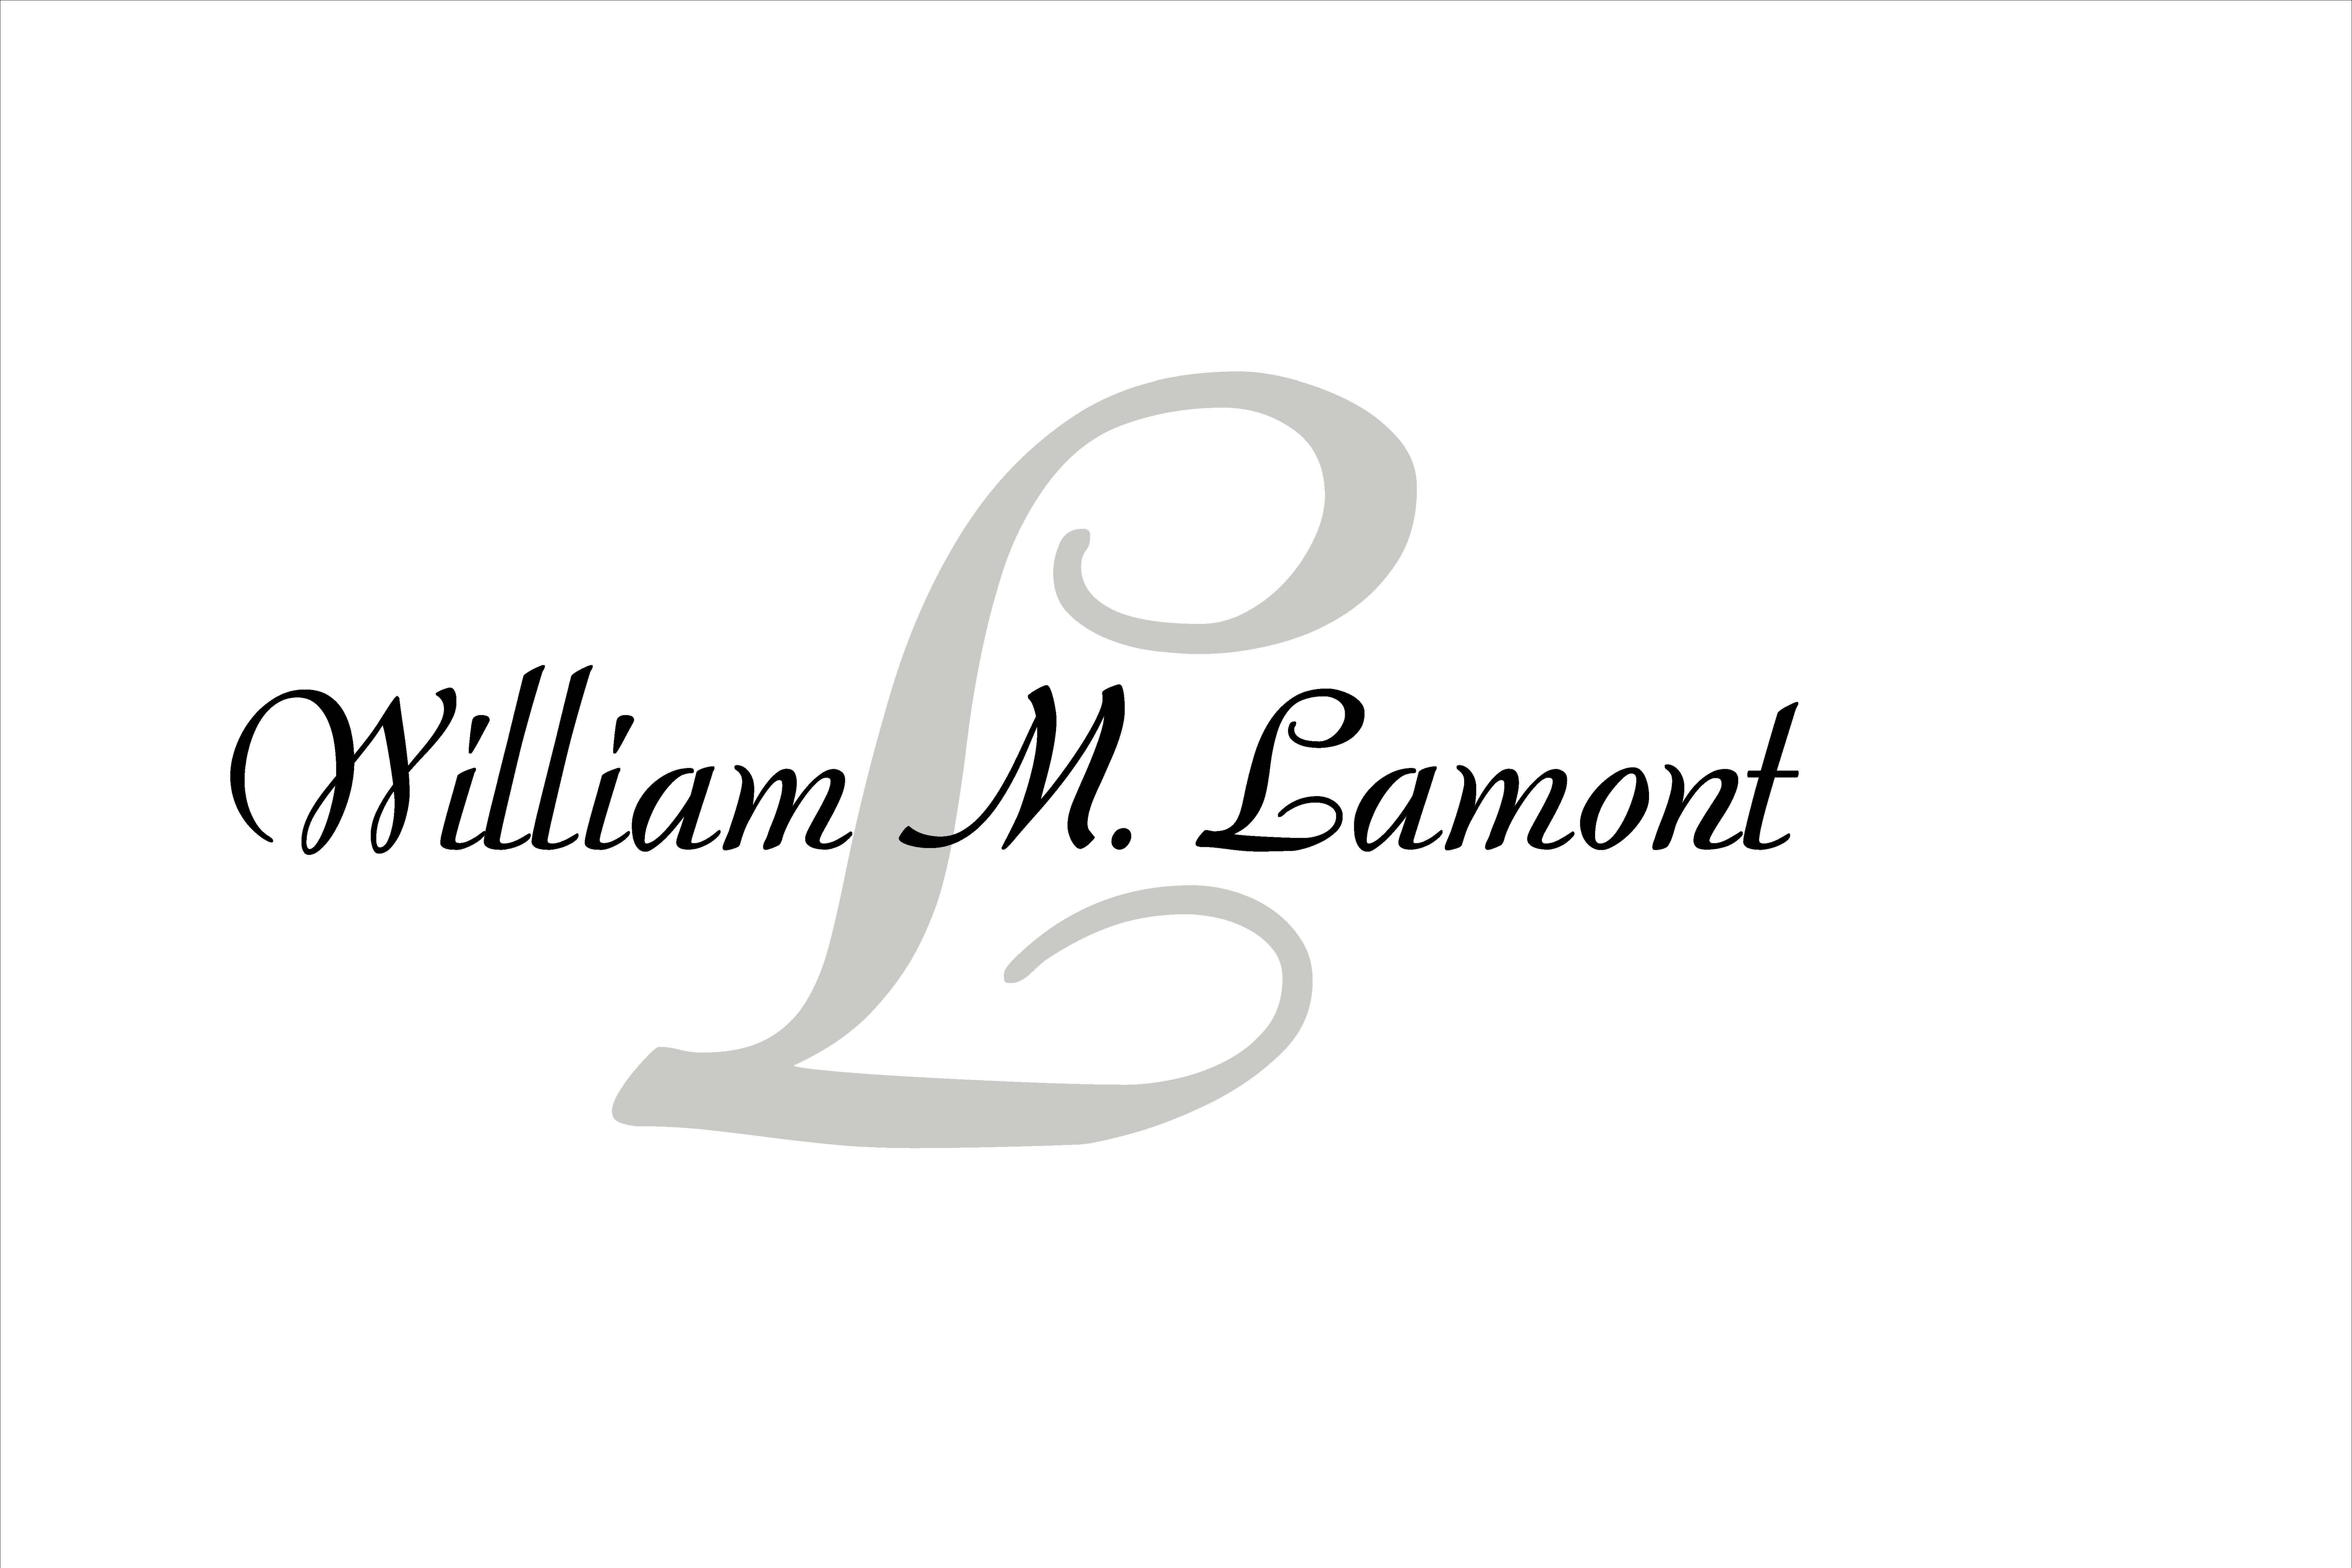 About William M. Lamont